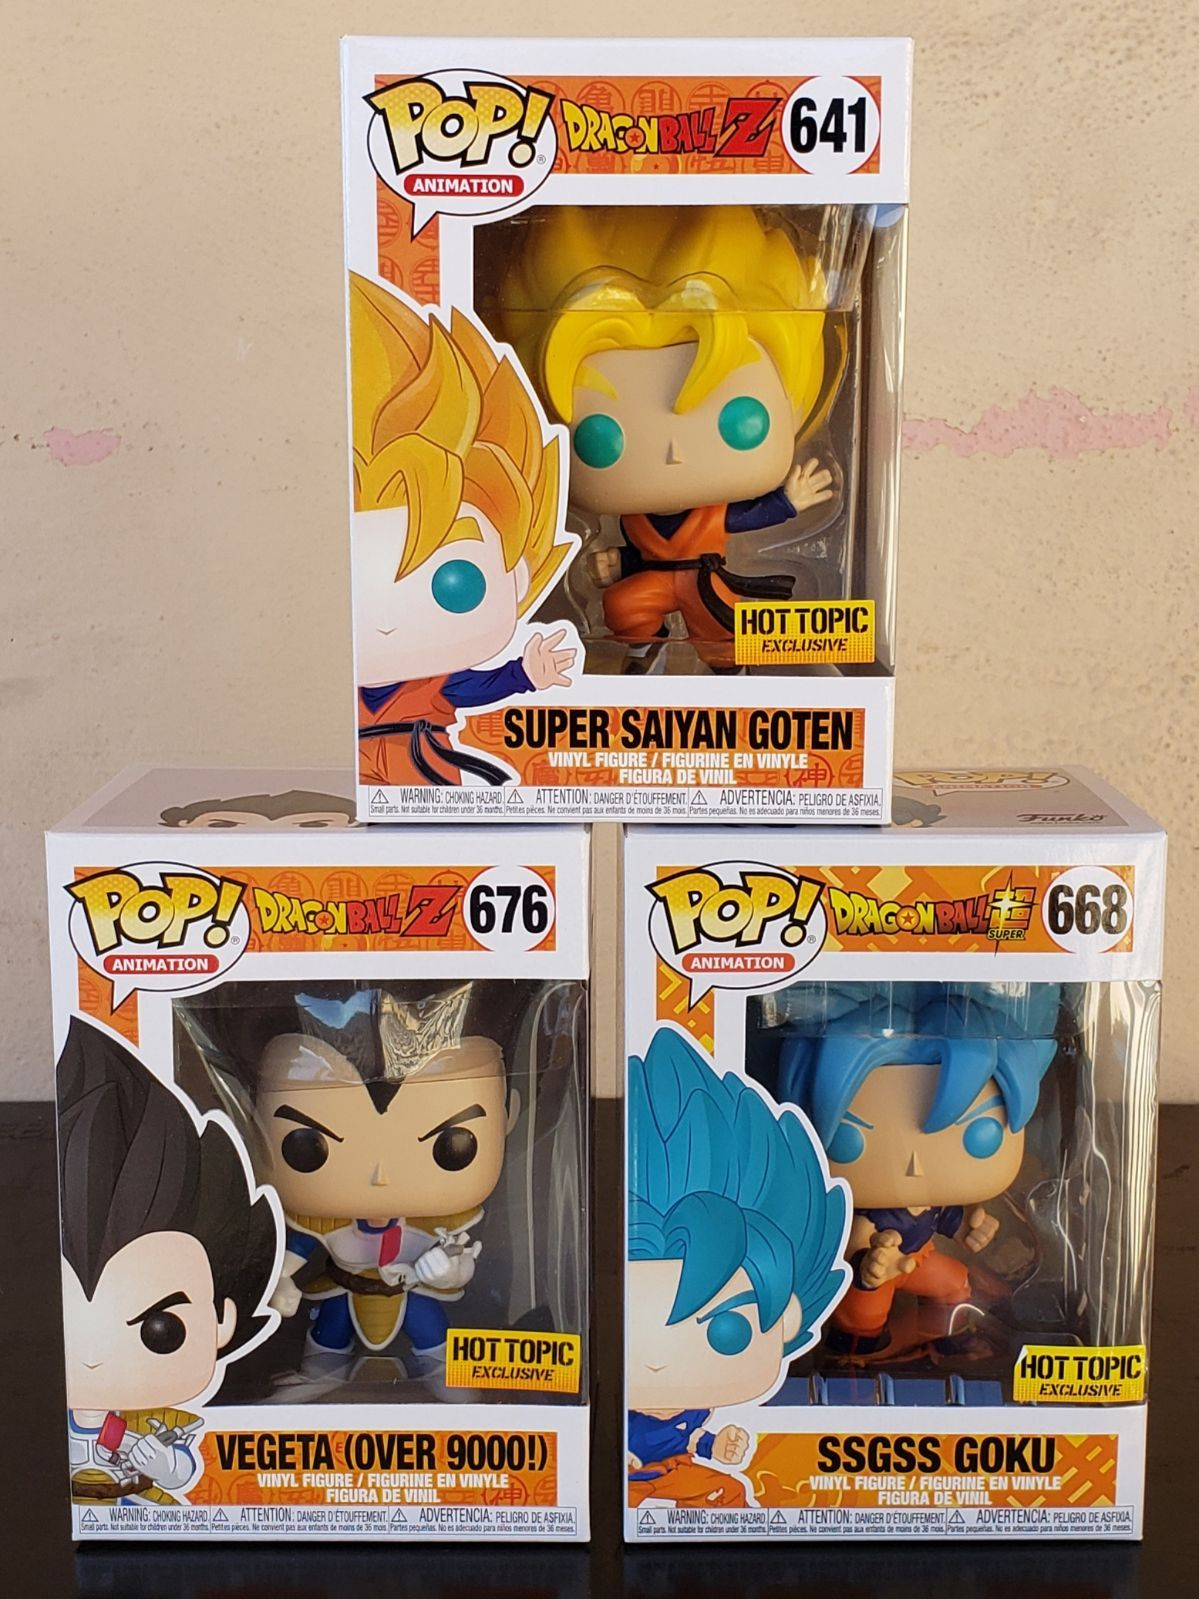 Brand New In Mint Condition Funko Pop Dragon Ball Z Will Be Shipped In Sorter Boxes Super Saiyan Goten 641 Vege Funko Pop Chase Goku And Gohan Vinyl Figures